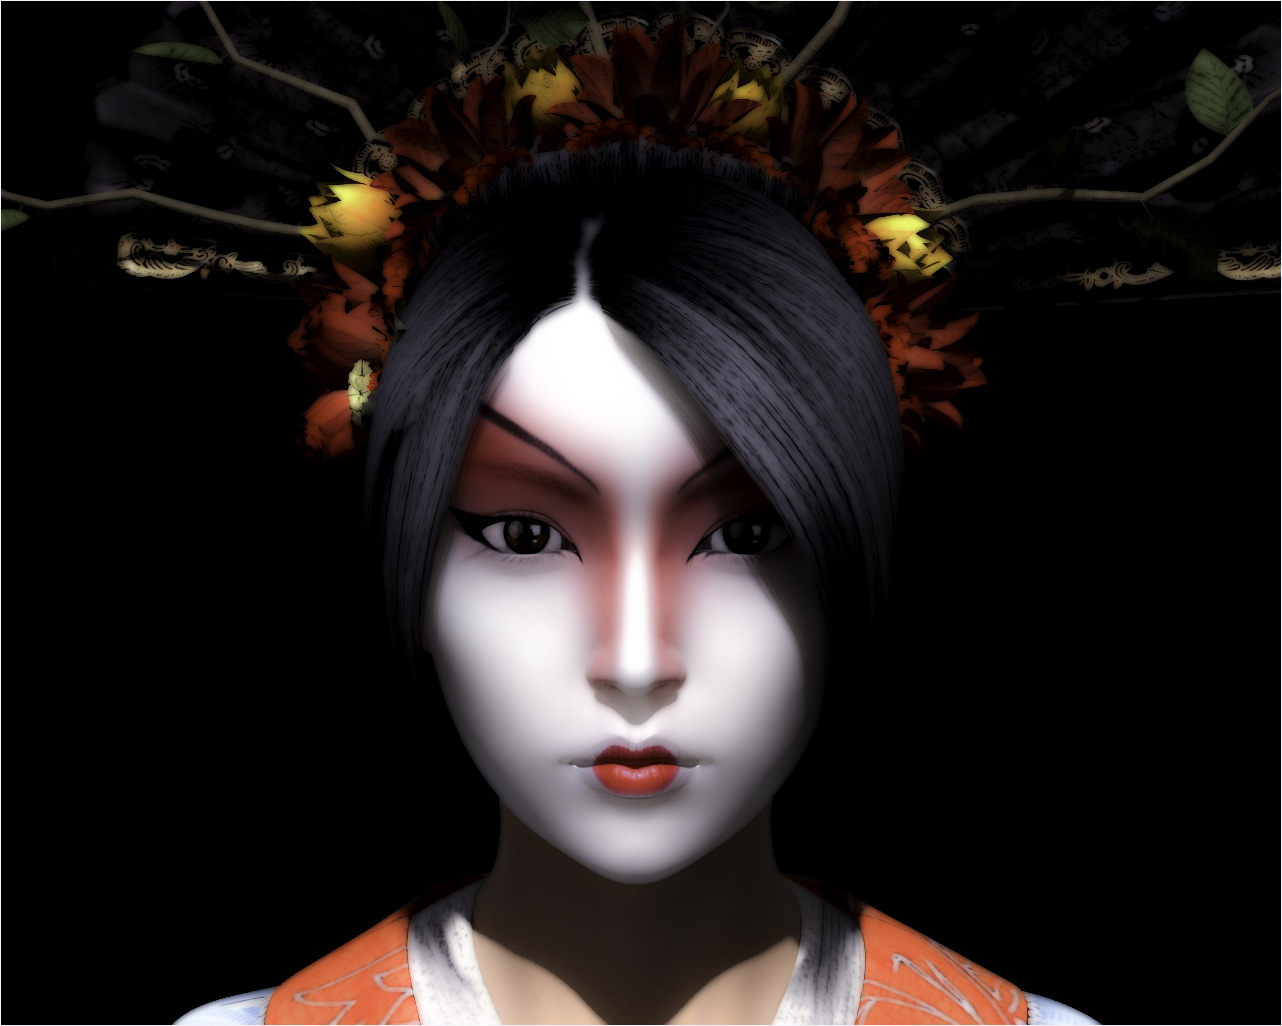 Yumi: China Girl (Video & Digital Art)